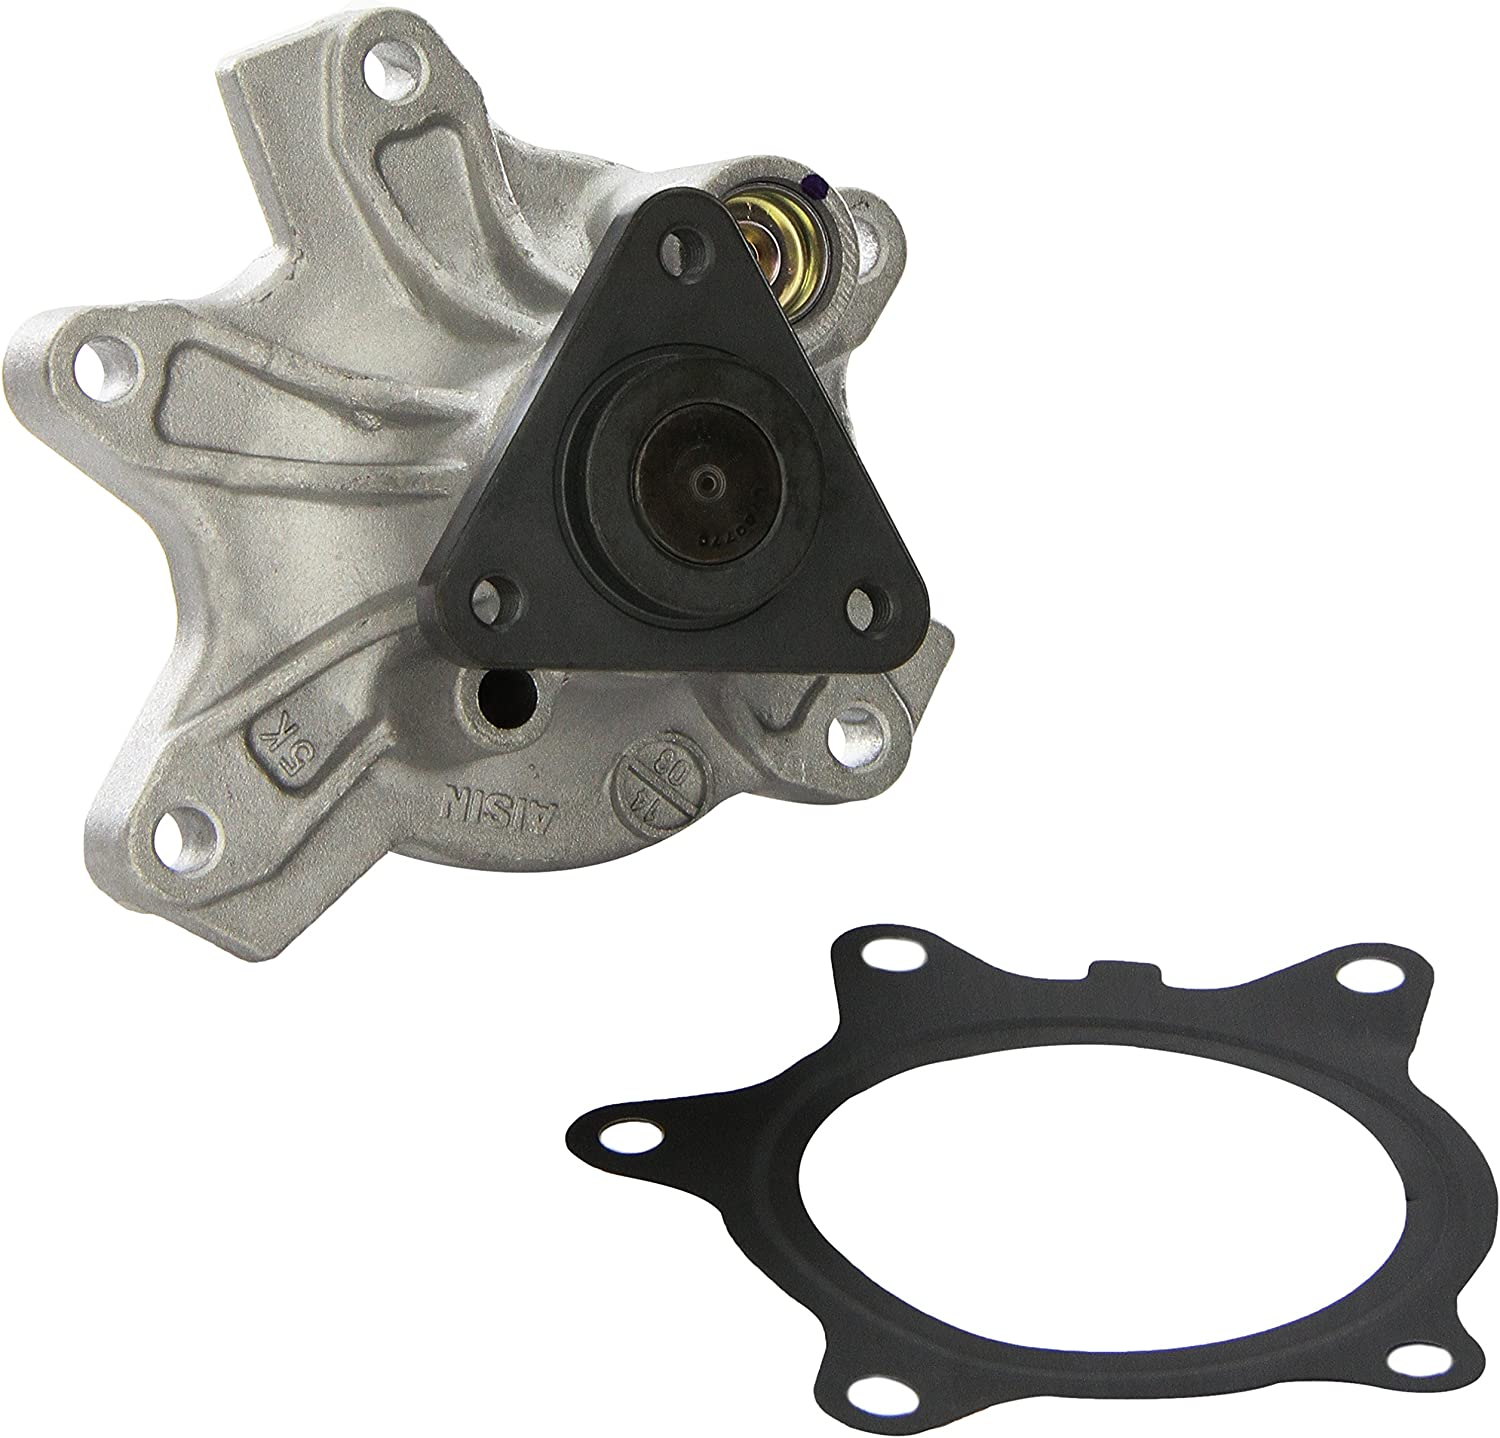 Genuine Toyota 16100-29157-83 Water Pump Assembly